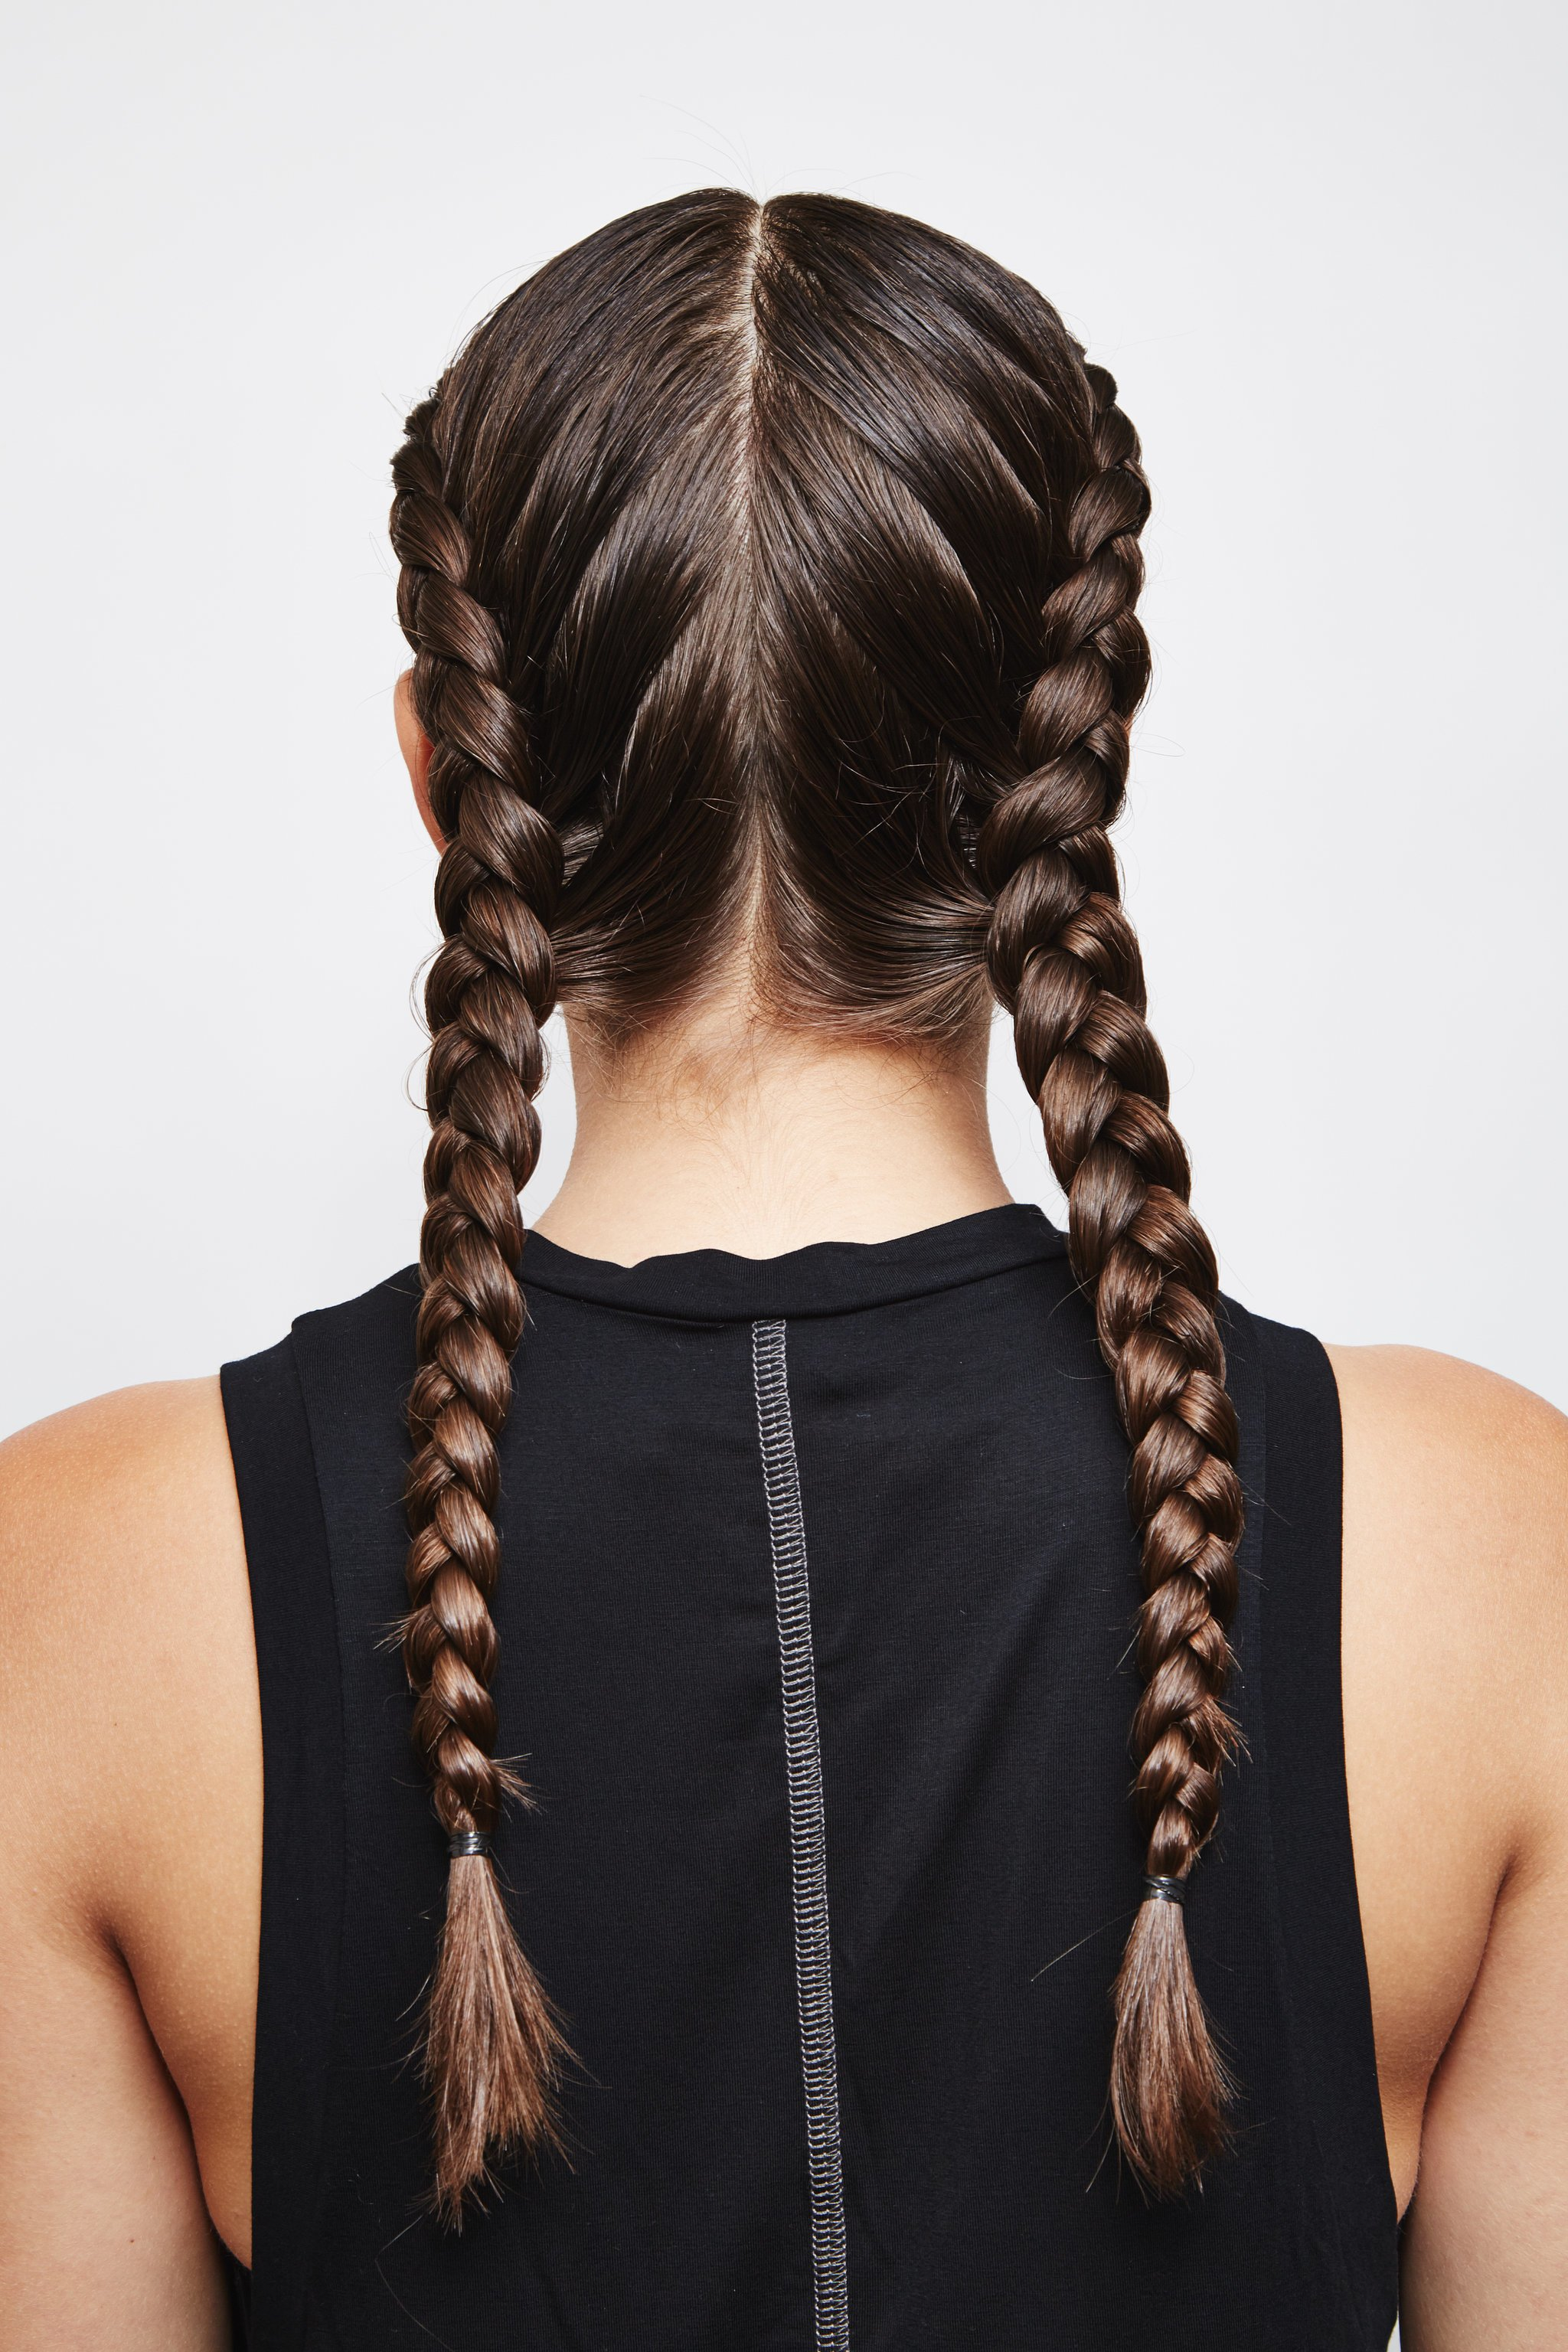 7 Steps On How To Make A Perfect French Braid